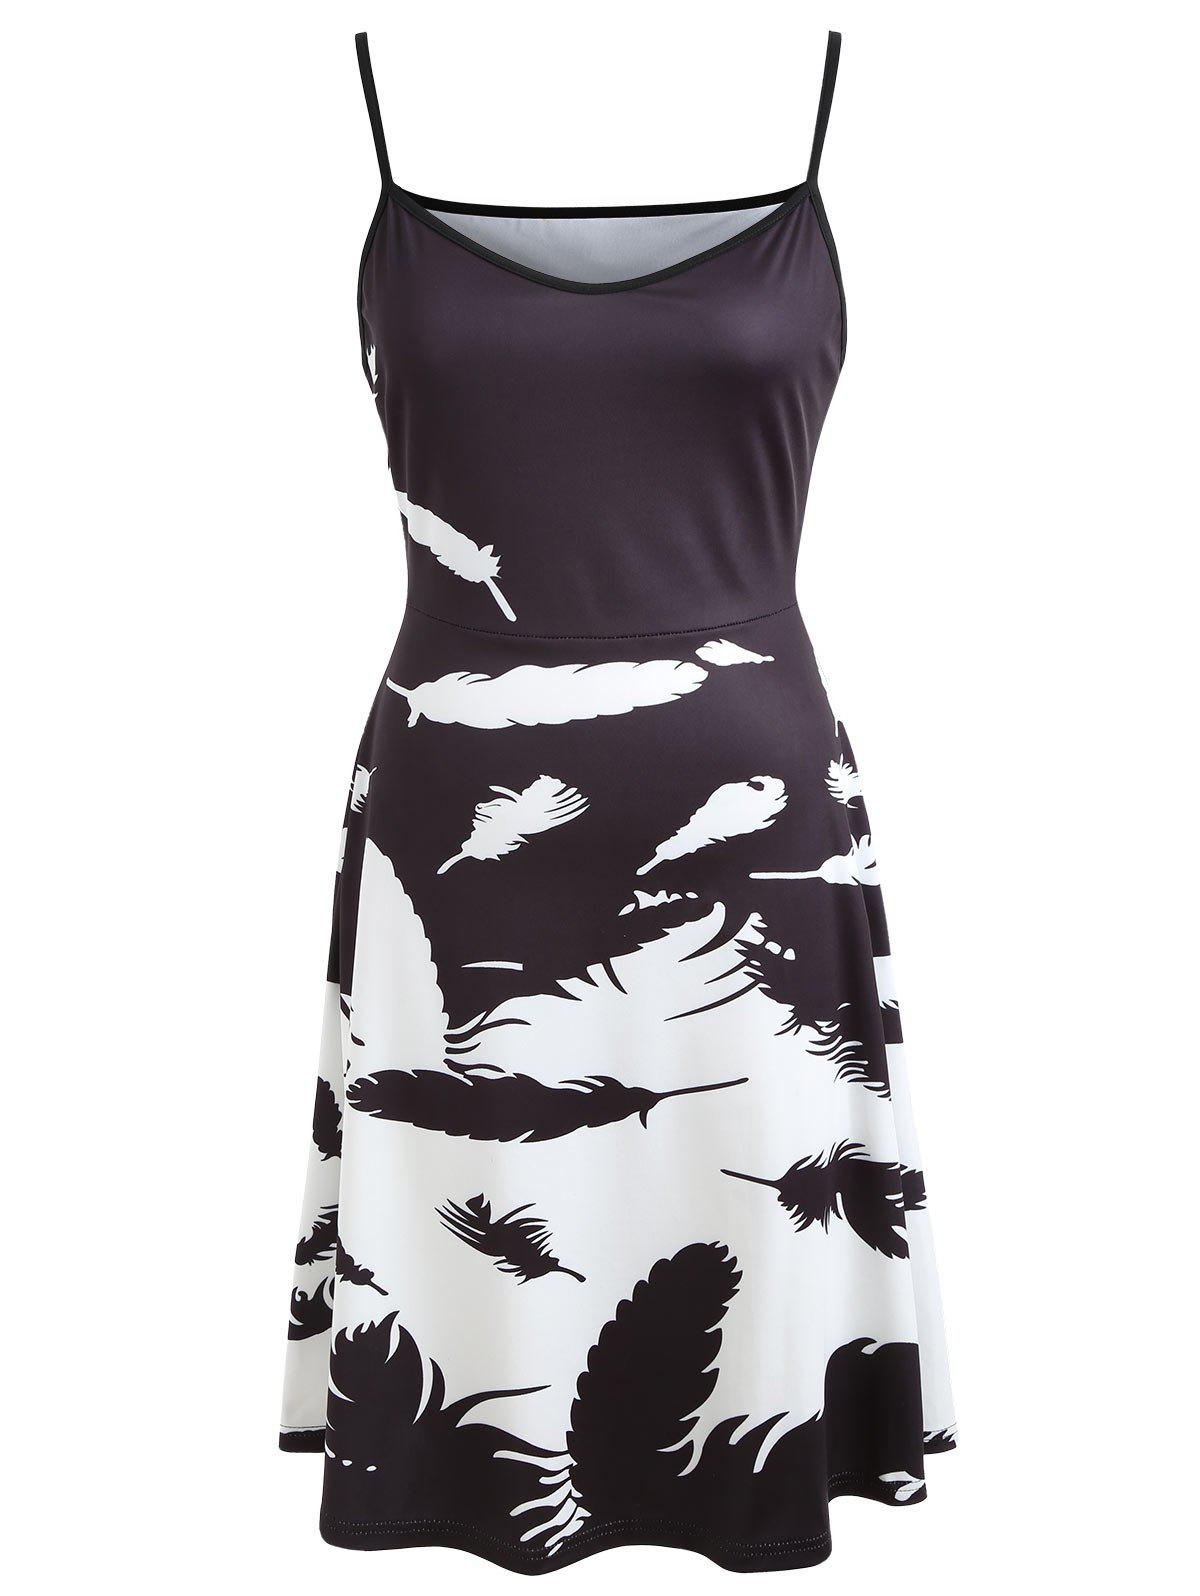 Feather Print V-neck Flare Dress - BLACK L